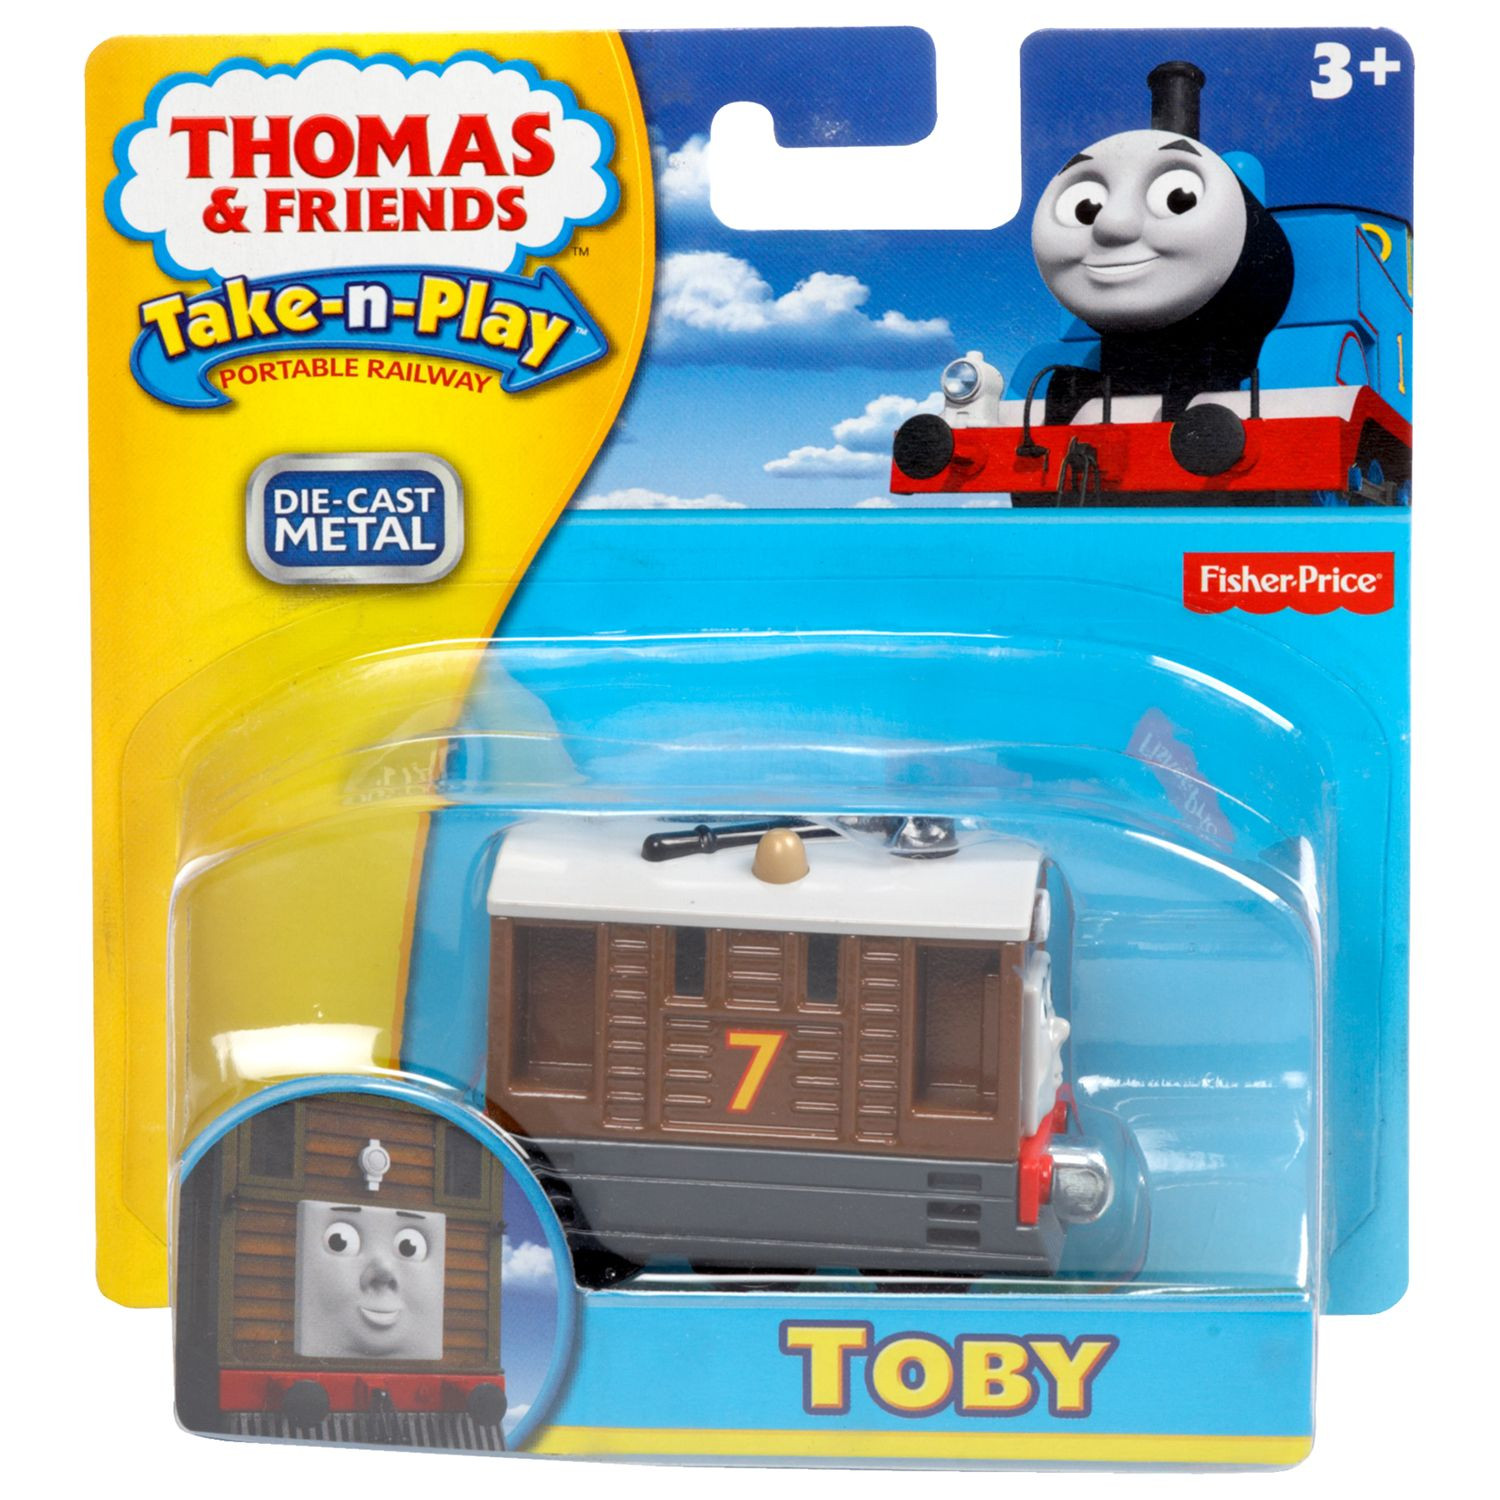 Thomas the Tank Engine Fisher-Price Thomas & Friends Take-n-Play Engine, Assorted